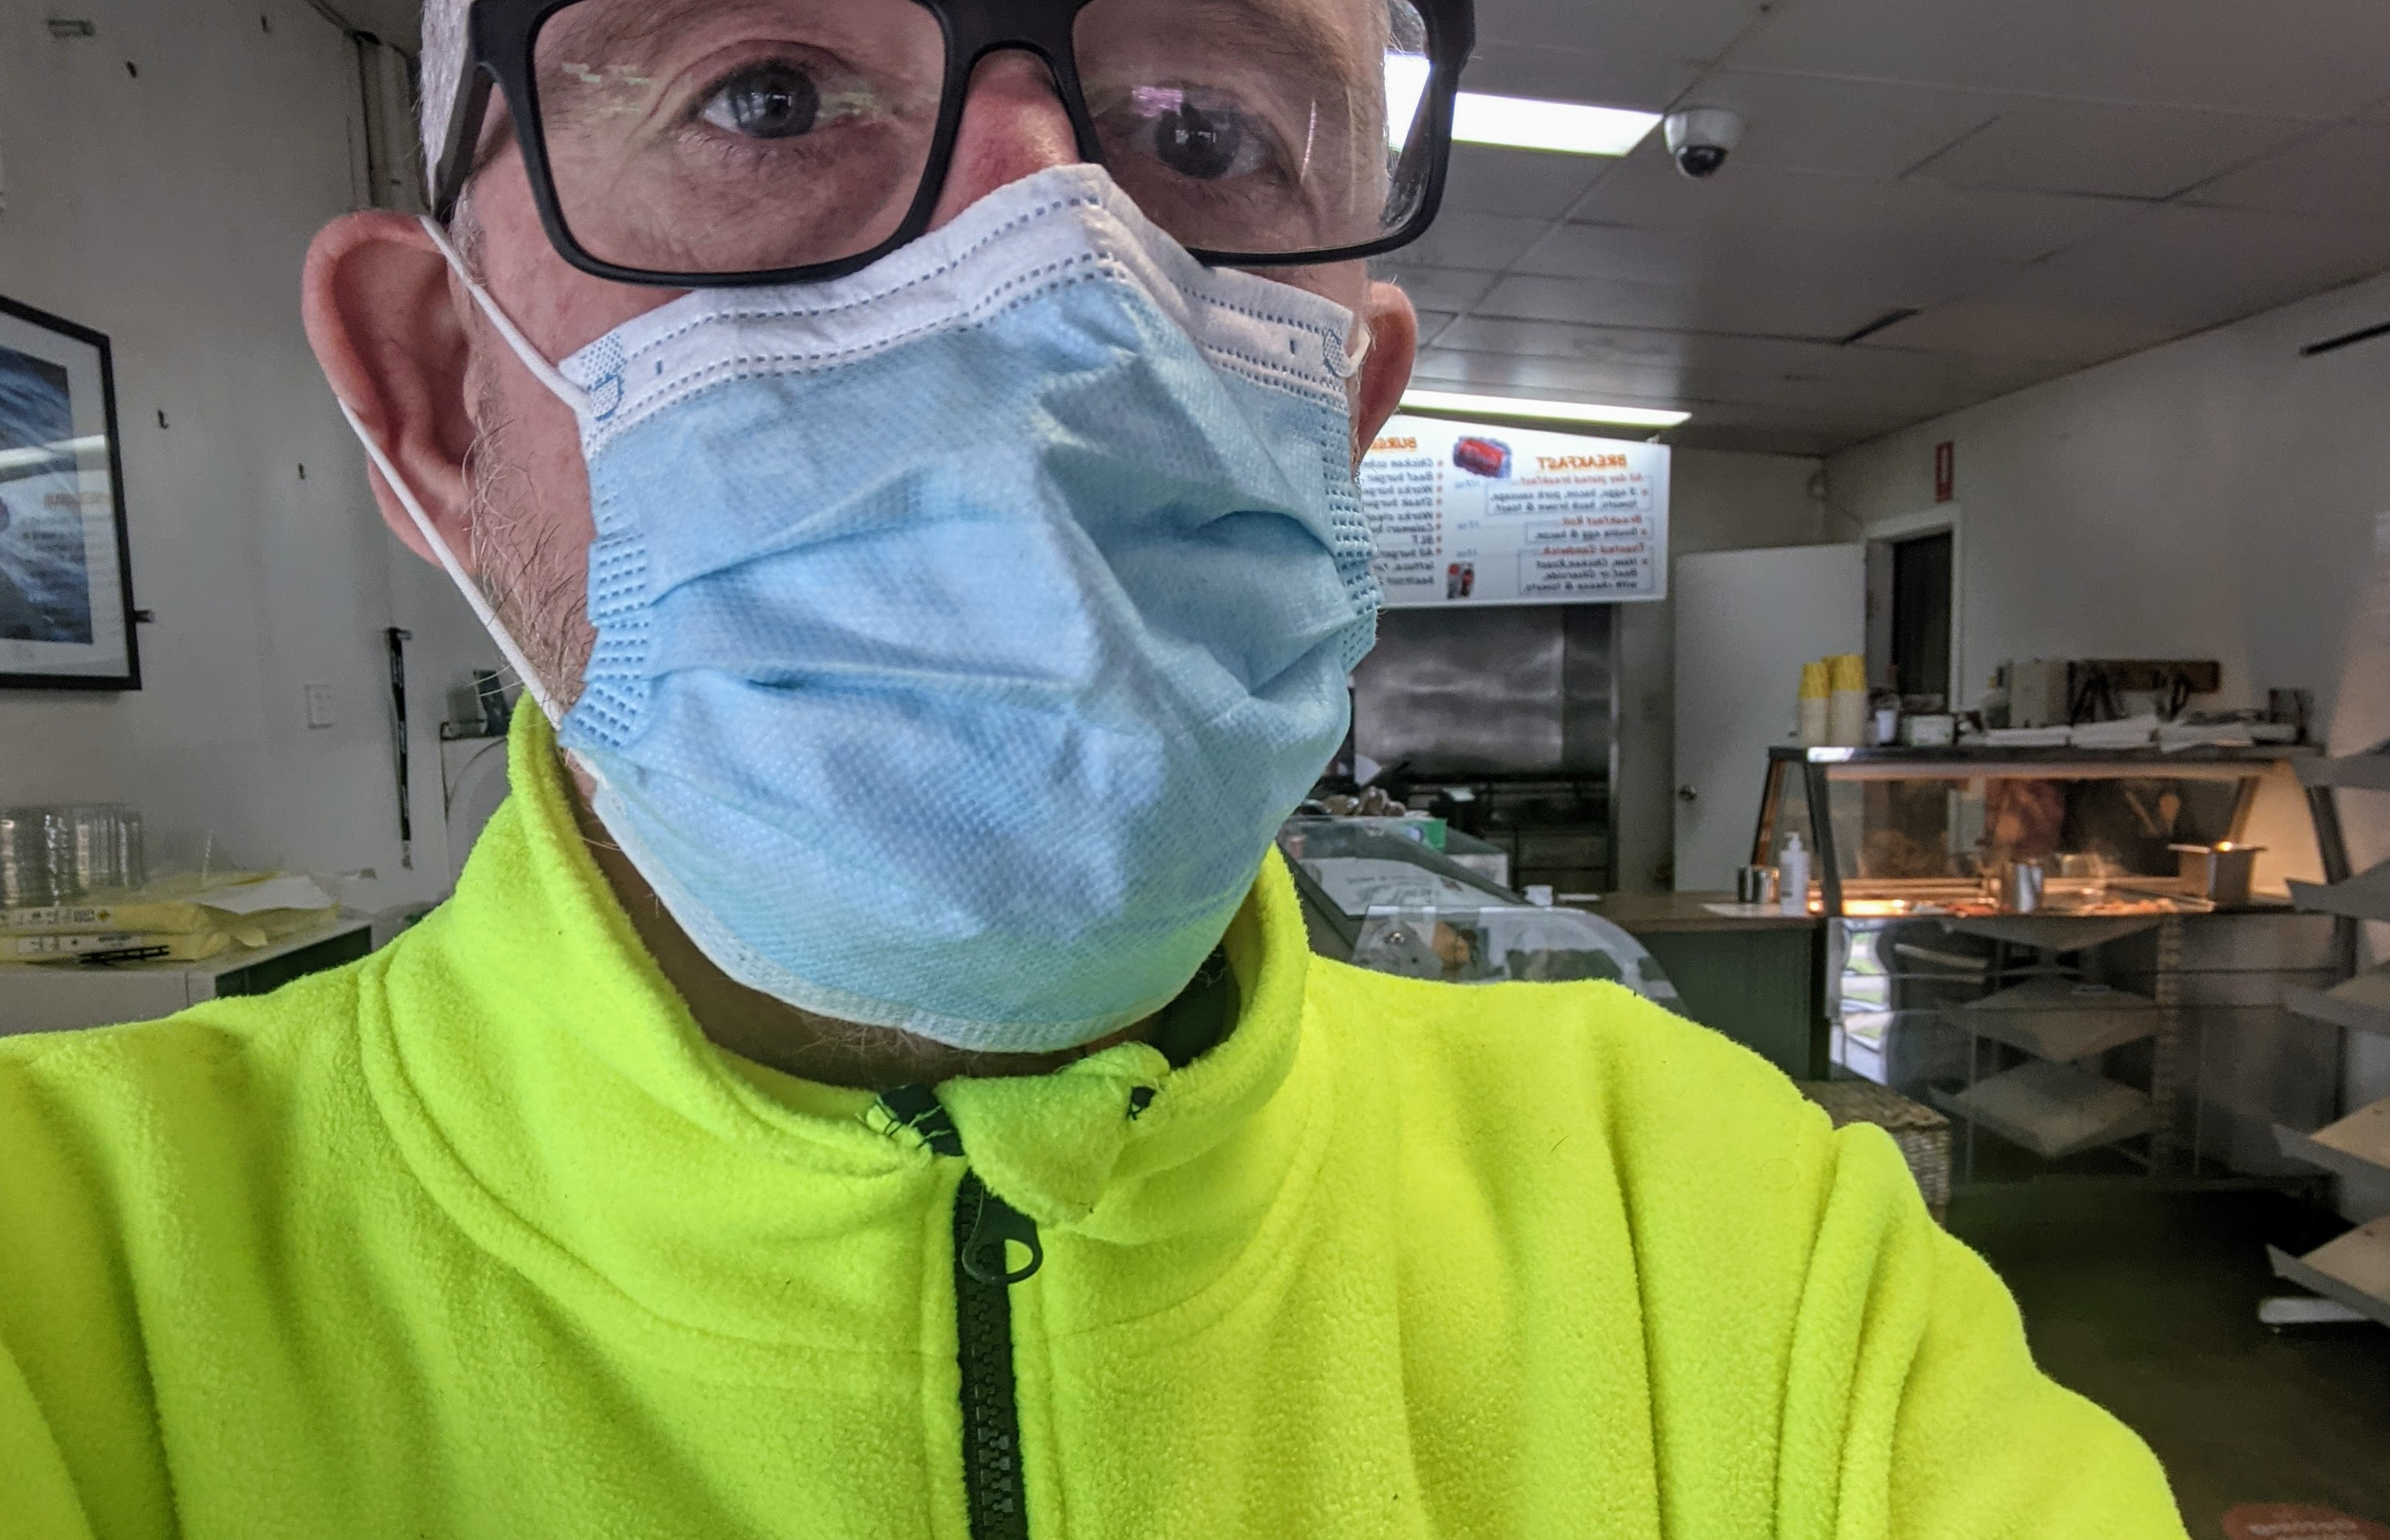 Grabbing lunch from Skimmos with everyone else in hi-vis